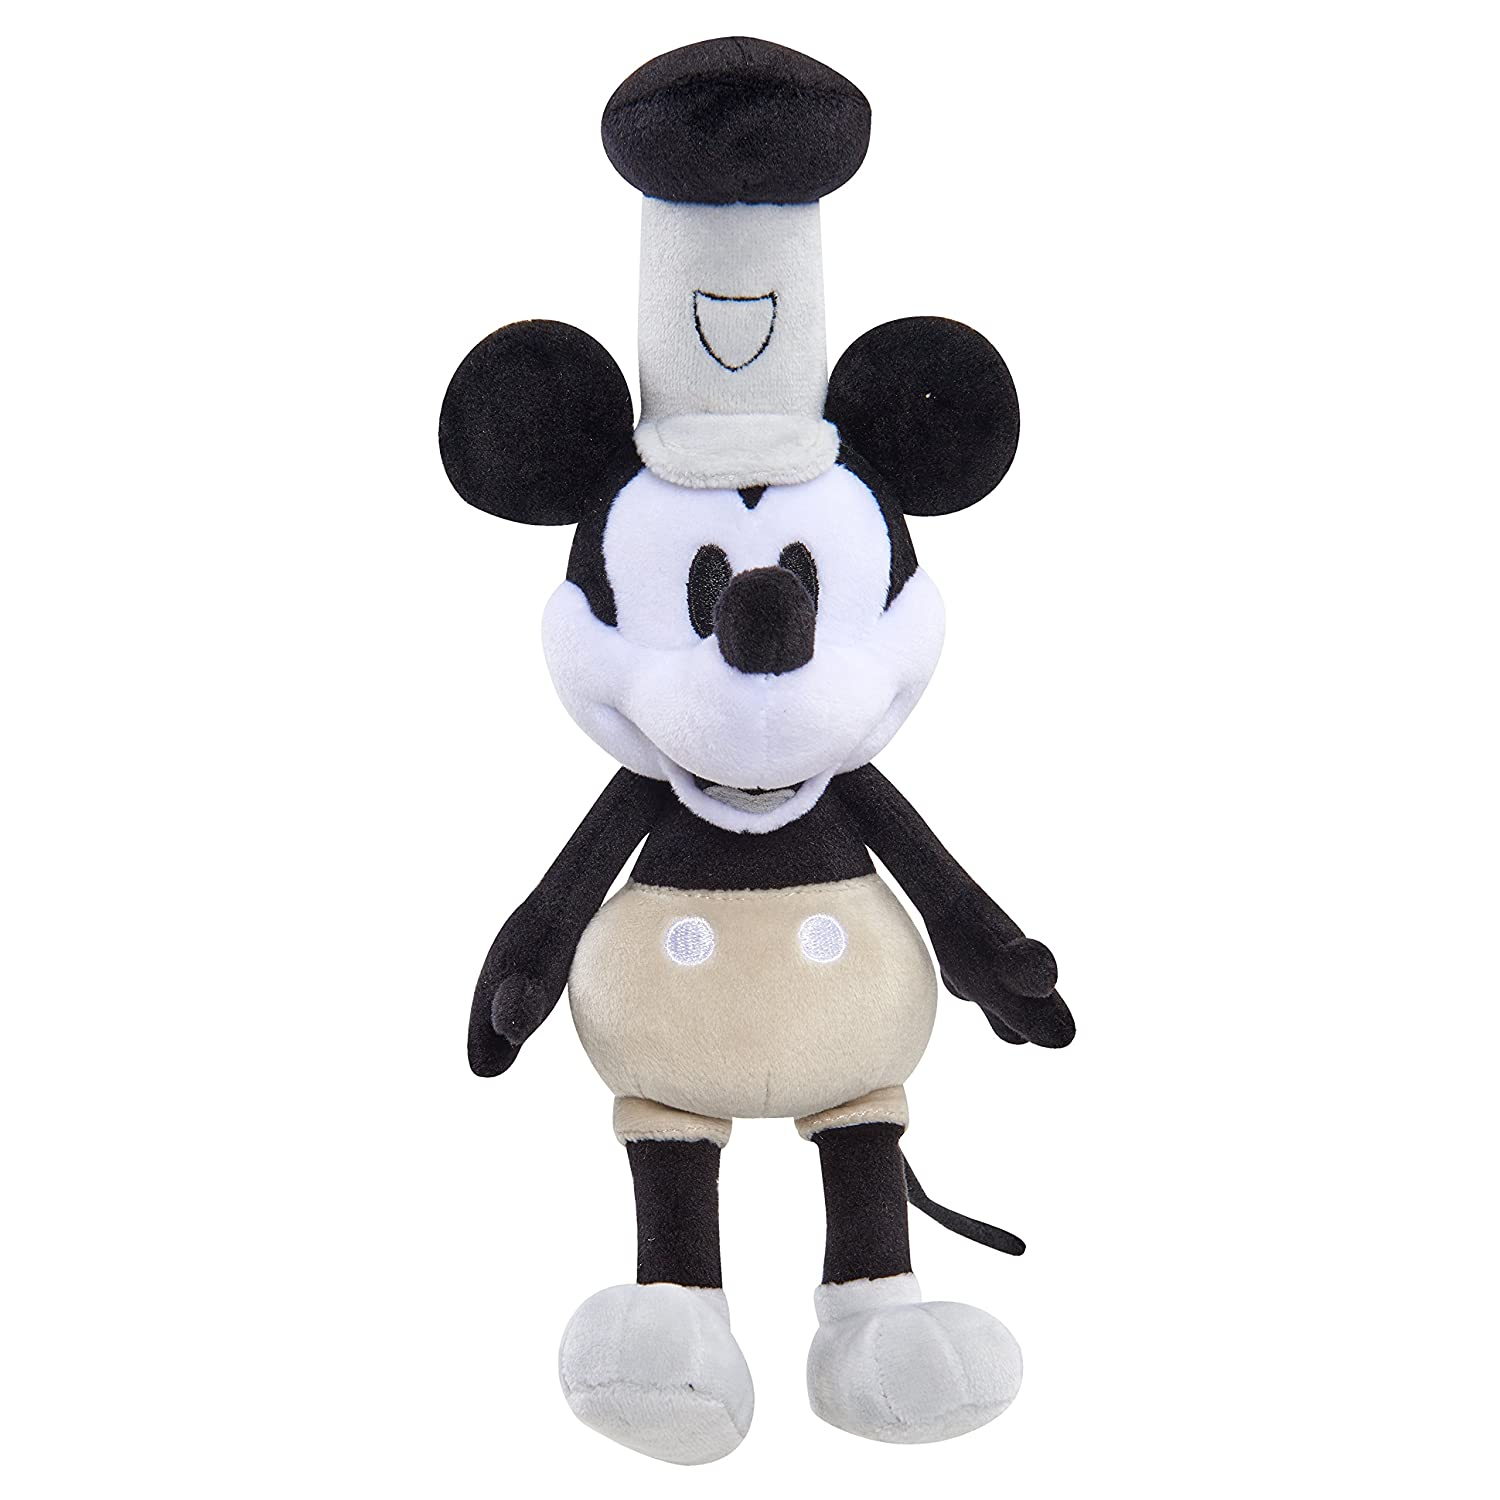 Tsum Tsum Mickey 90th Anniversary Choice Materials Steamboat Willie Set Supply Brand New In Box